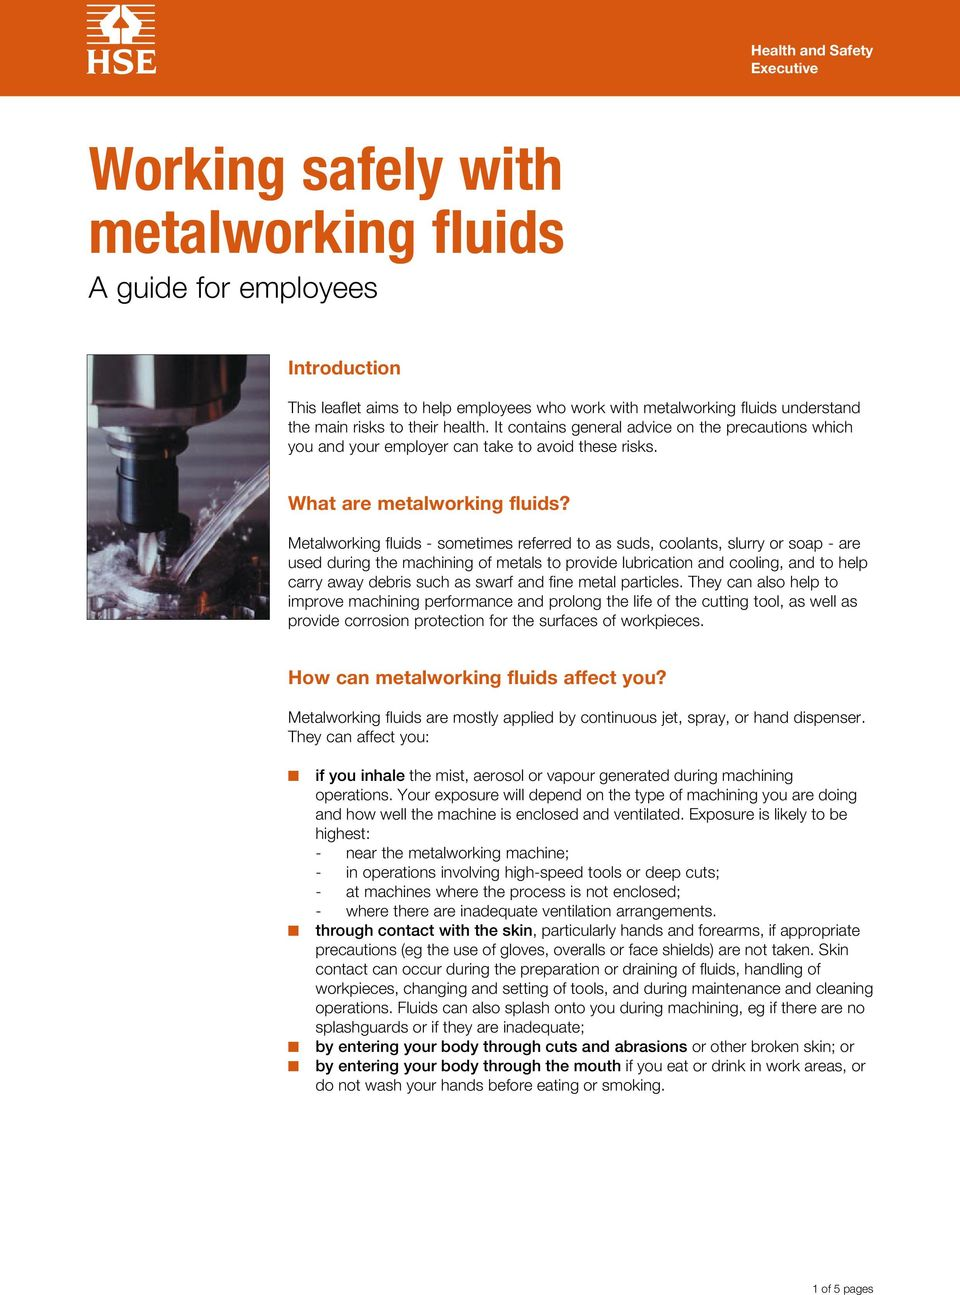 Metalworking fluids - sometimes referred to as suds, coolants, slurry or soap - are used during the machining of metals to provide lubrication and cooling, and to help carry away debris such as swarf